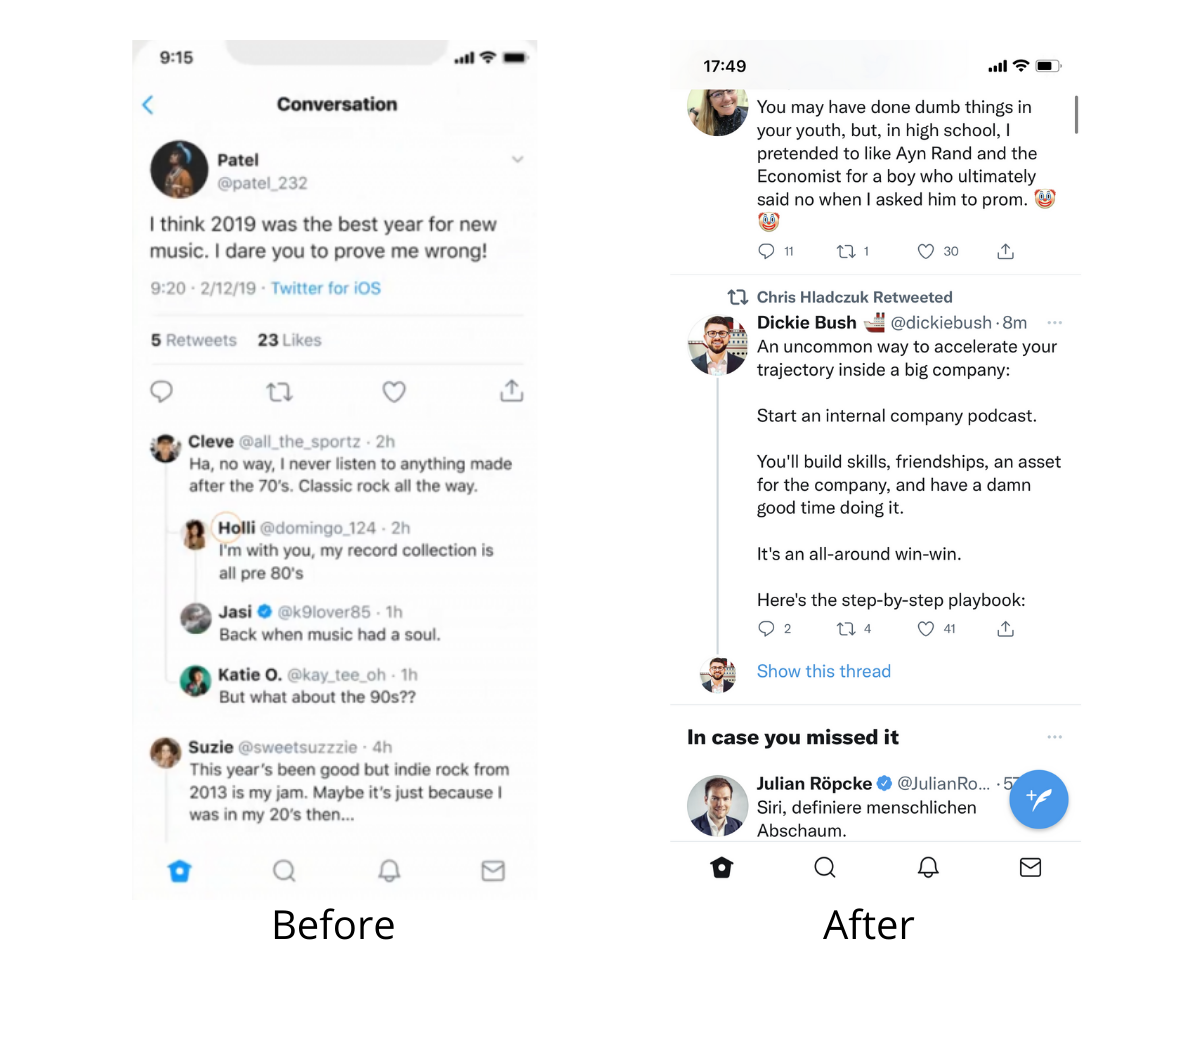 Twitter's redesign in details